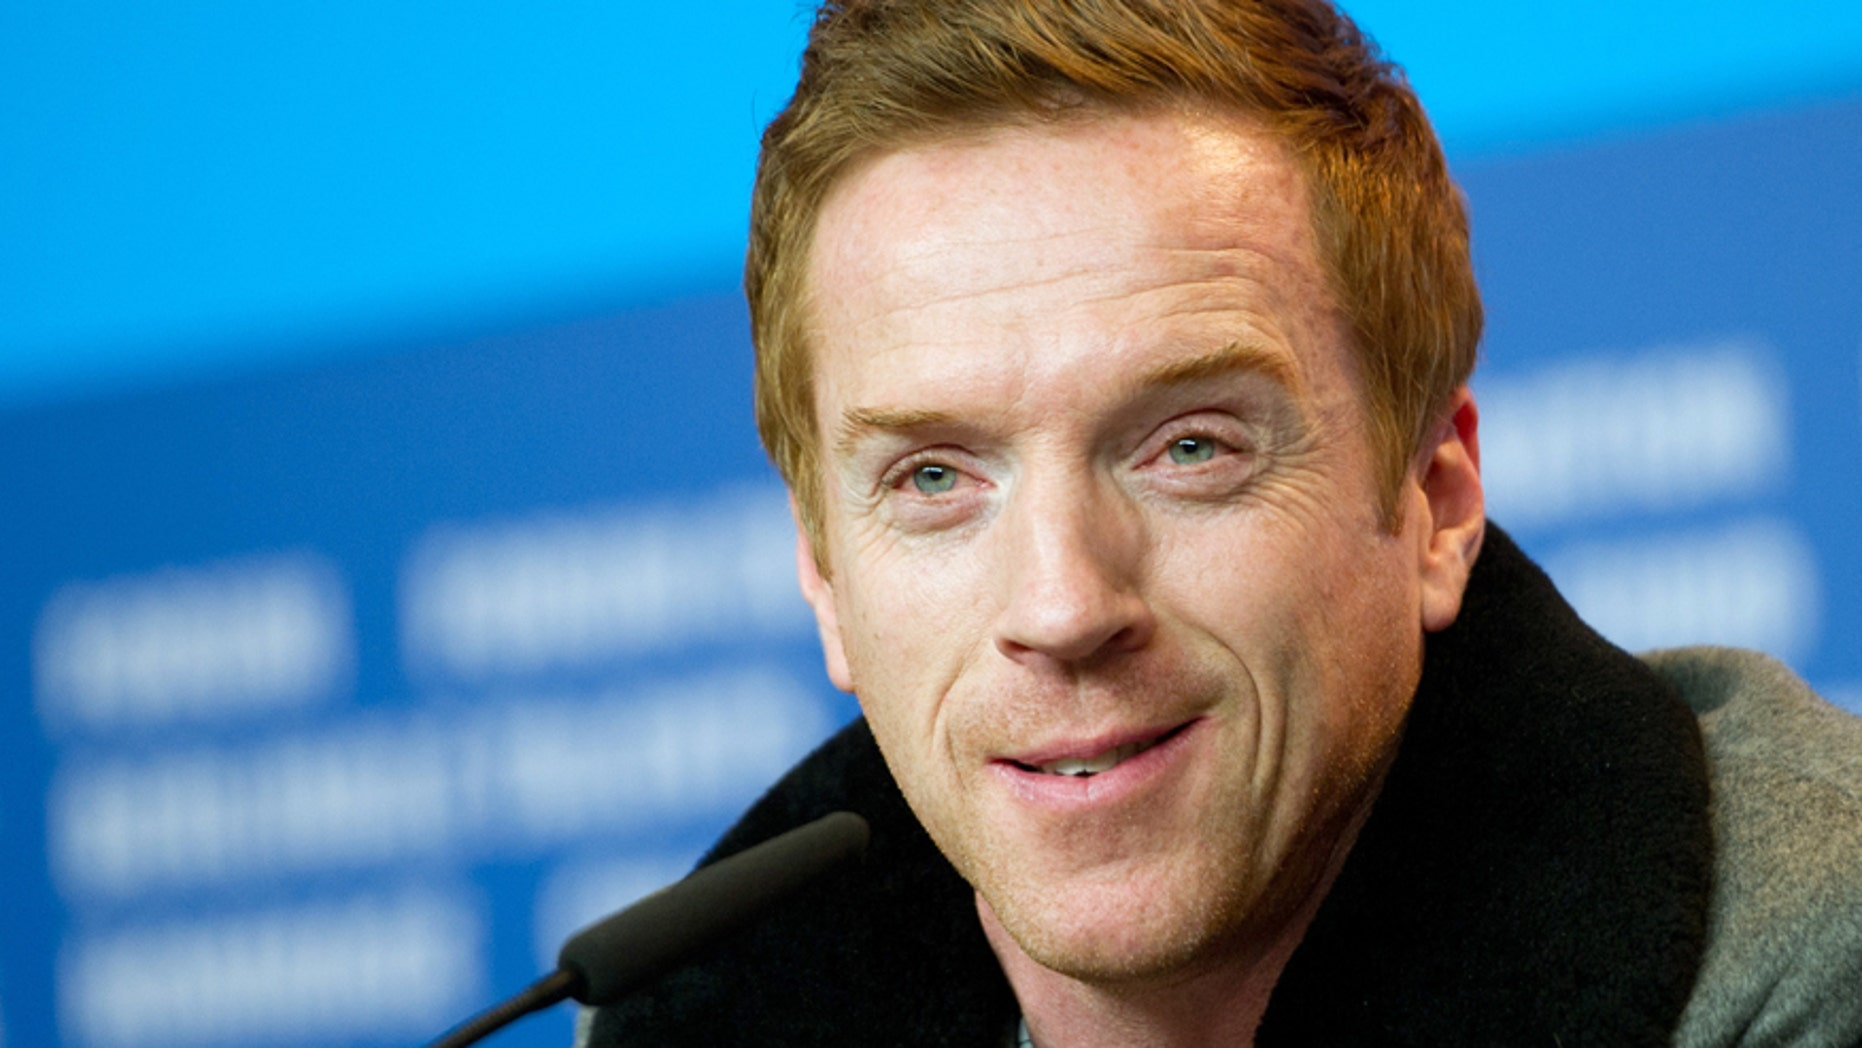 Actor Damian Lewis attends a news conference to promote the movie 'Queen of the Desert' in competition at the 65th Berlinale International Film Festival, in Berlin February 6, 2015.